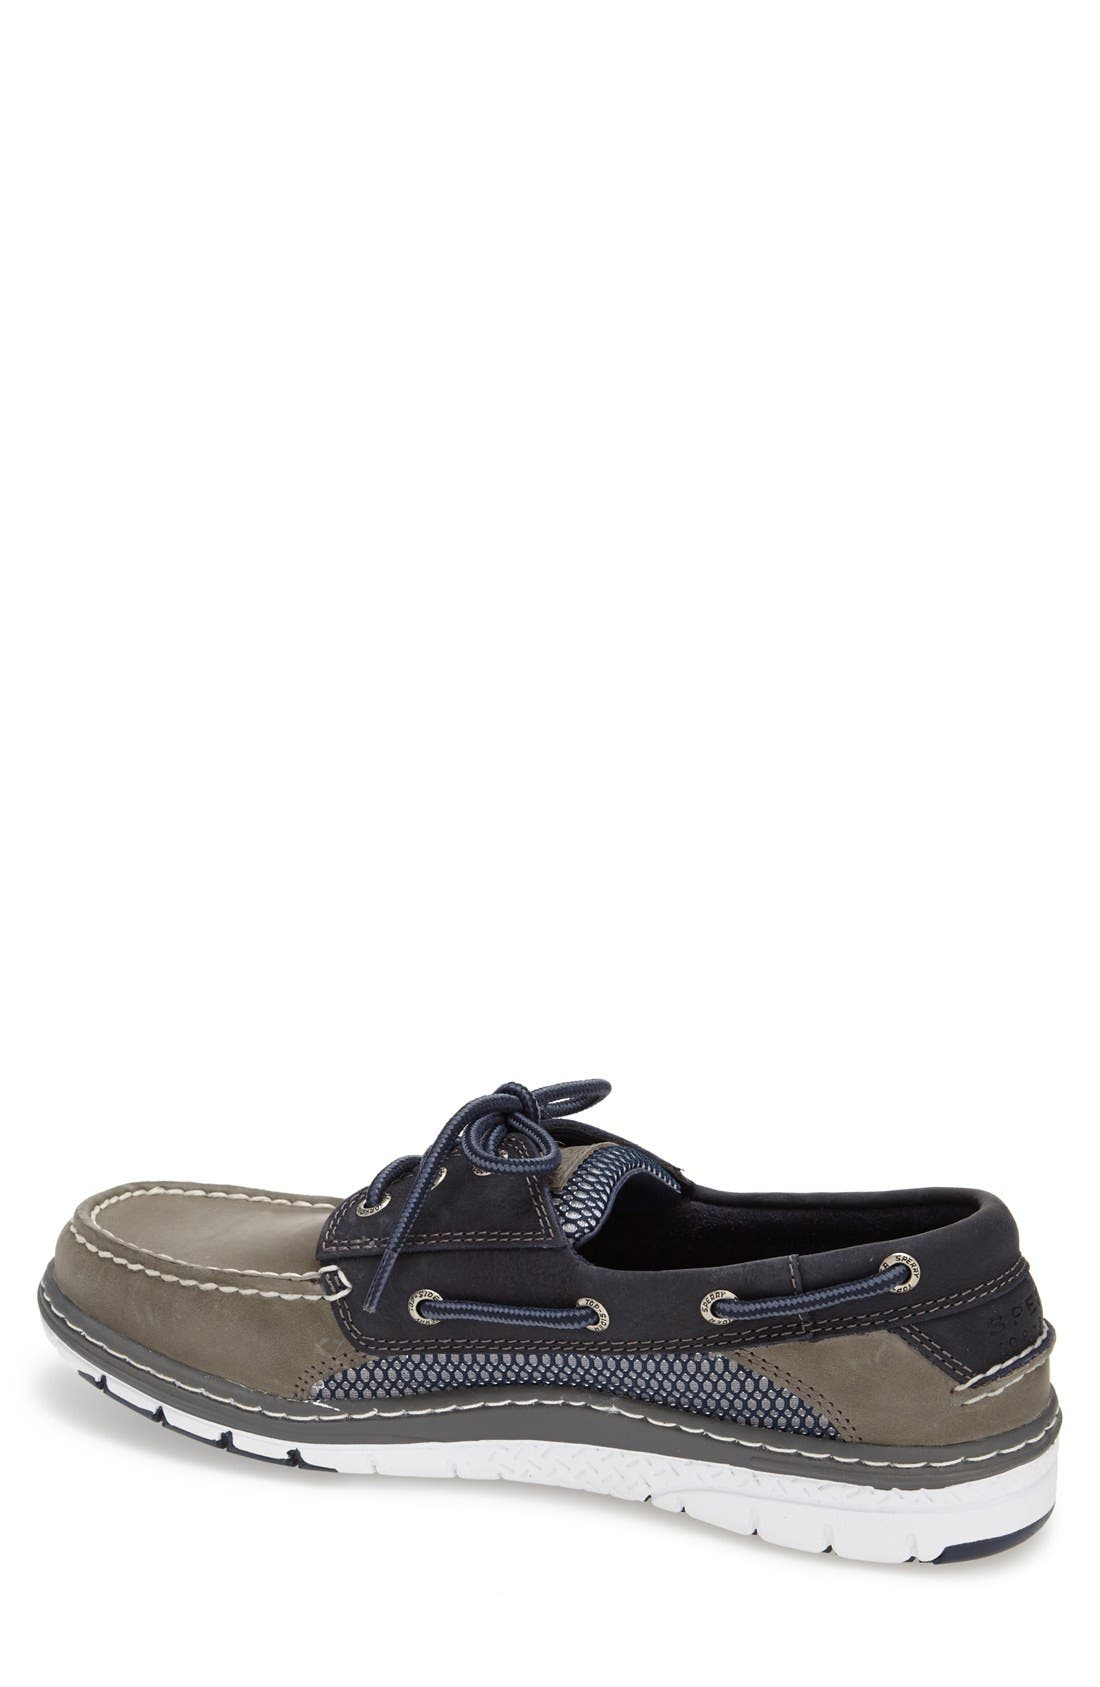 'Billfish Ultralite' Boat Shoe,                             Alternate thumbnail 67, color,